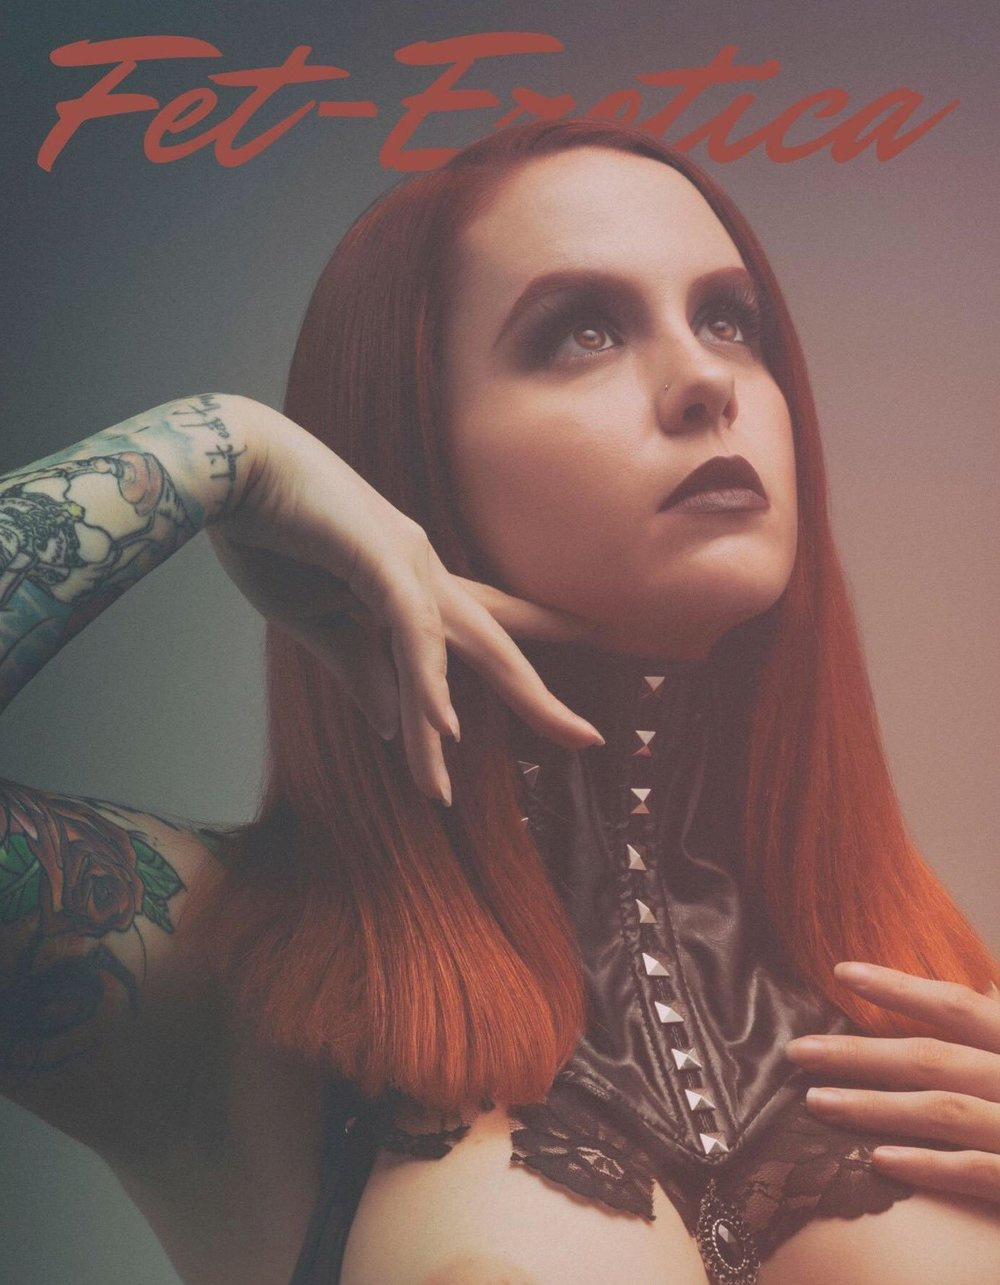 Fet-Erotica Magazine Issue 2